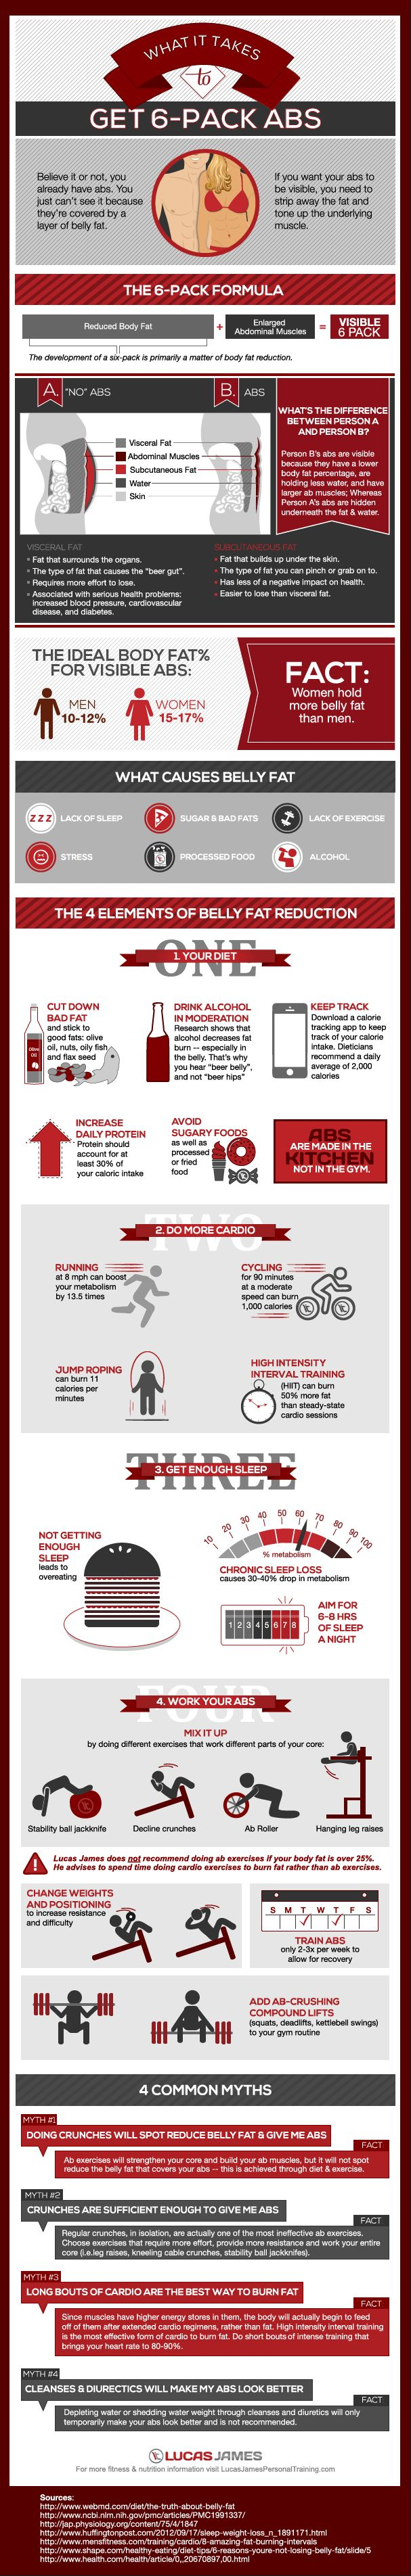 Even though this is about getting abs, it's a great infographic helping your overall health approach!